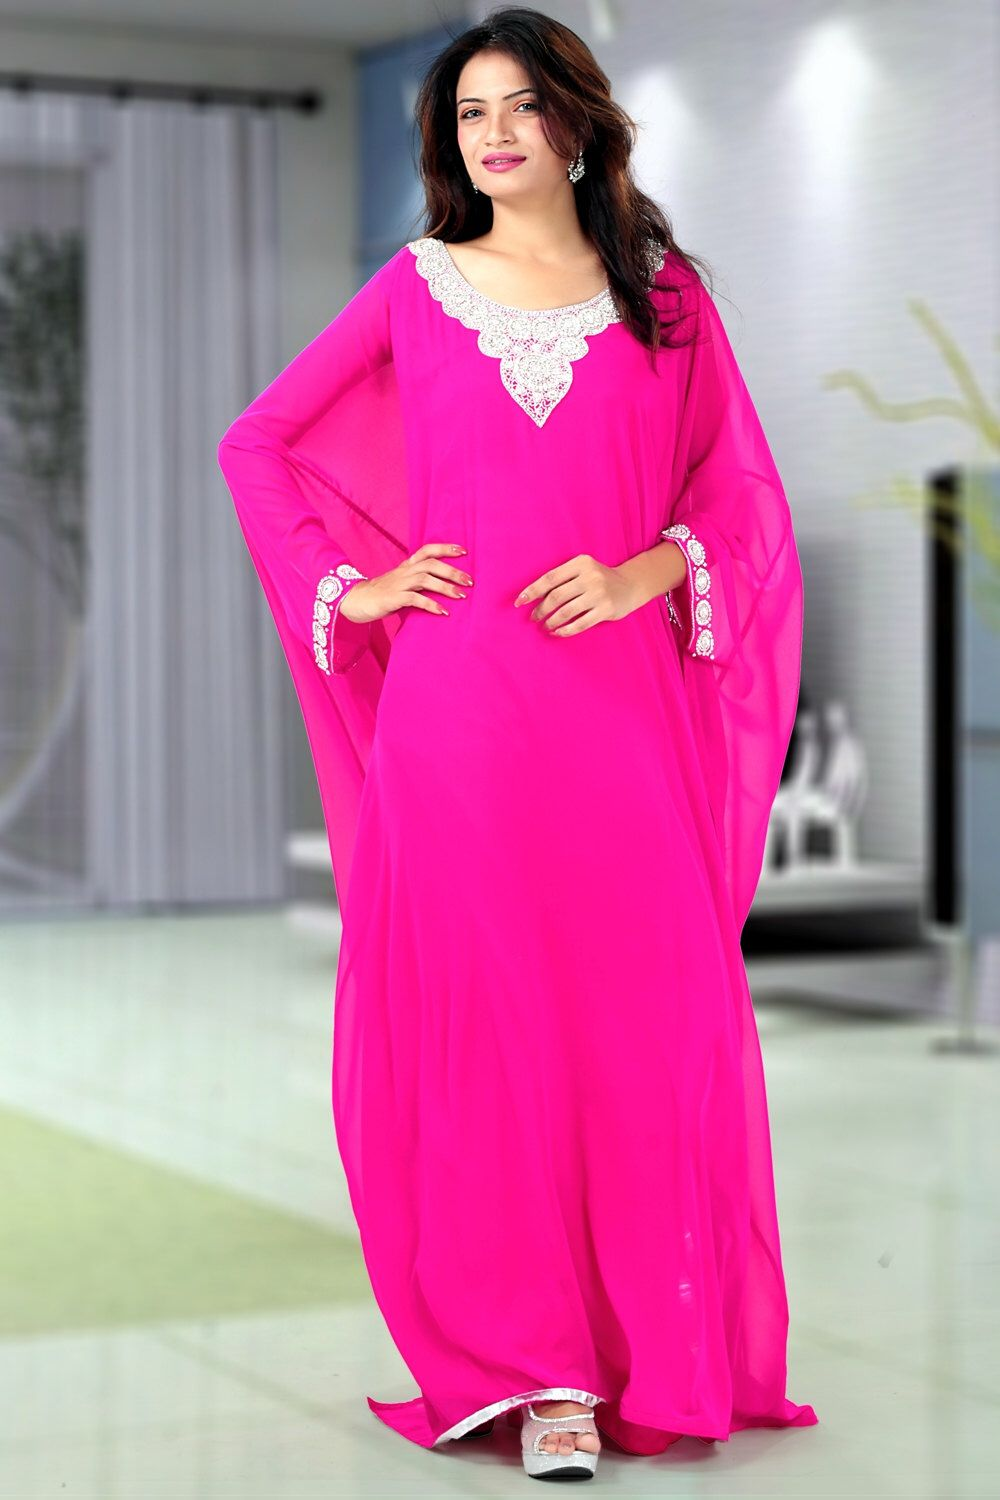 Dubai very fancy kaftans / abaya jalabiya Ladies Maxi Dress Wedding ...